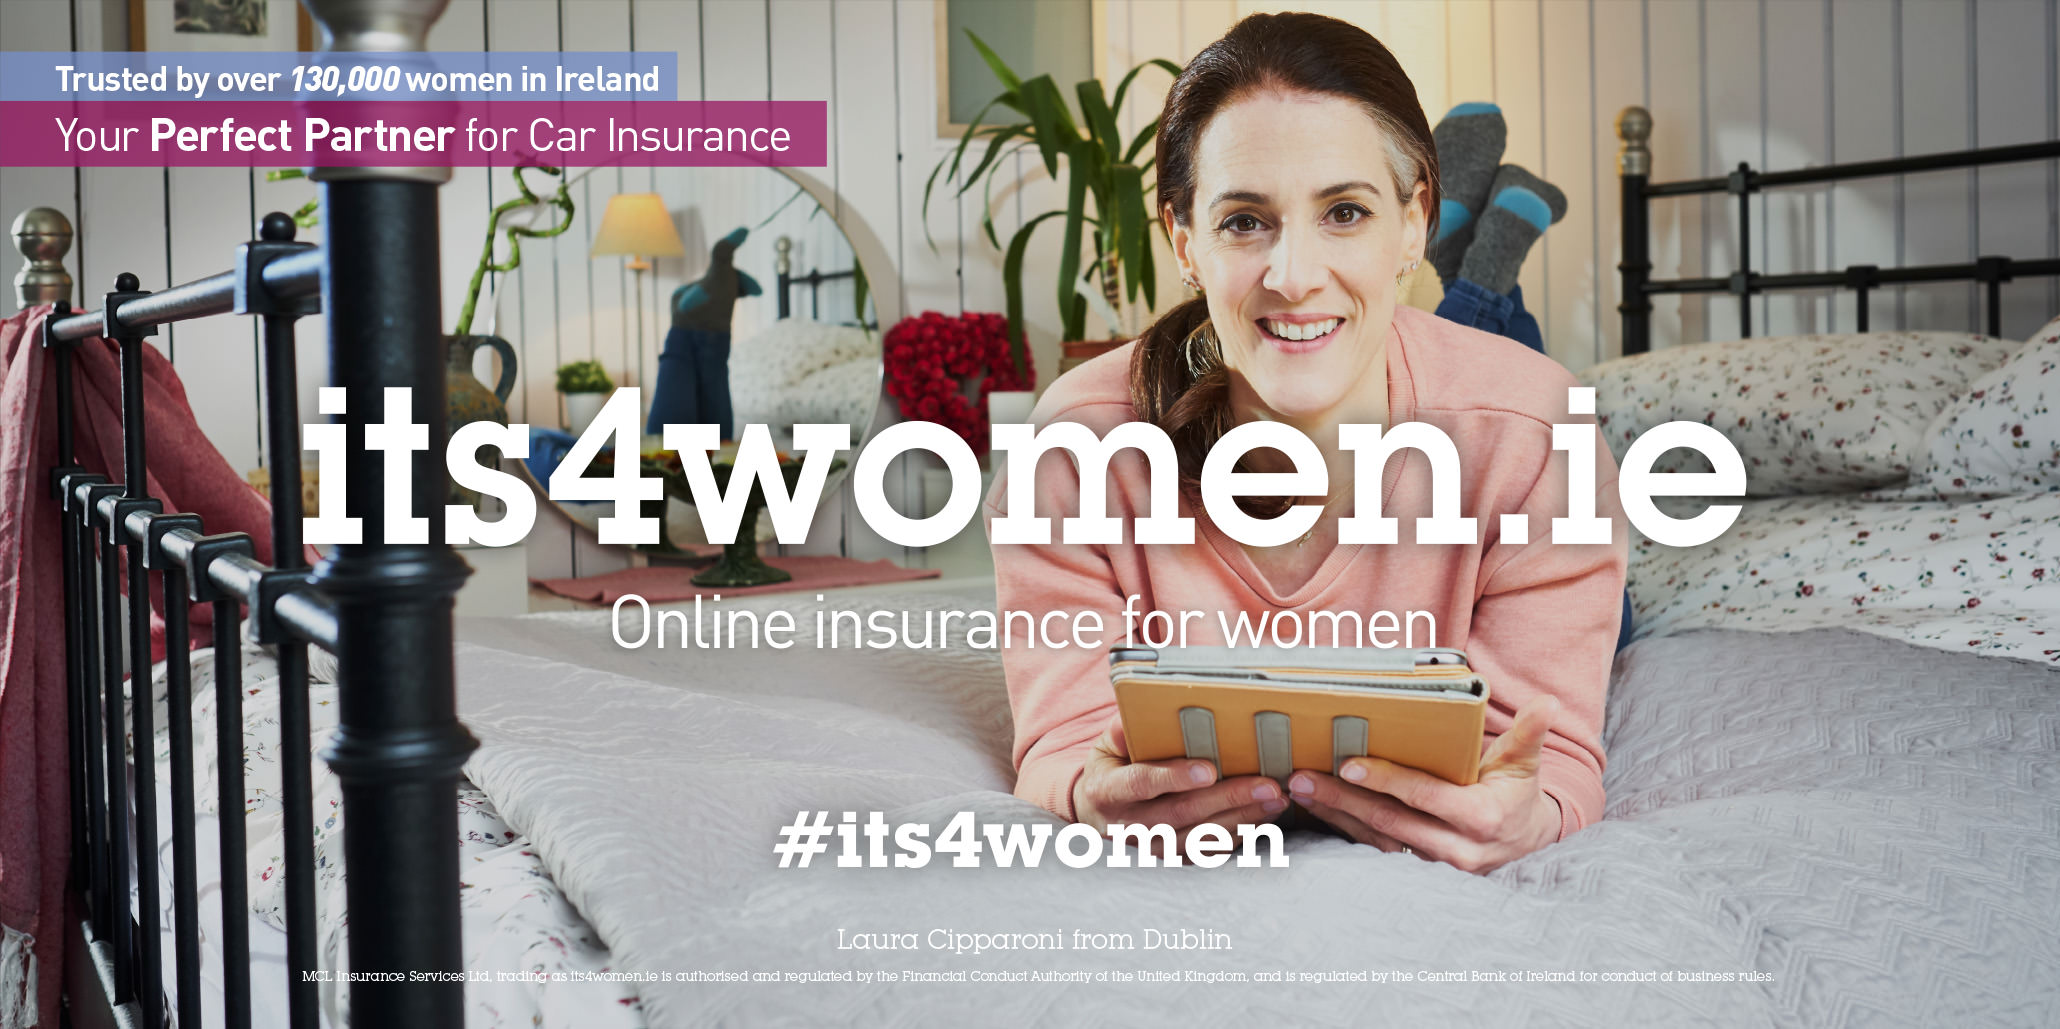 ITS4WOMEN.IE | GAVIN MILLAR